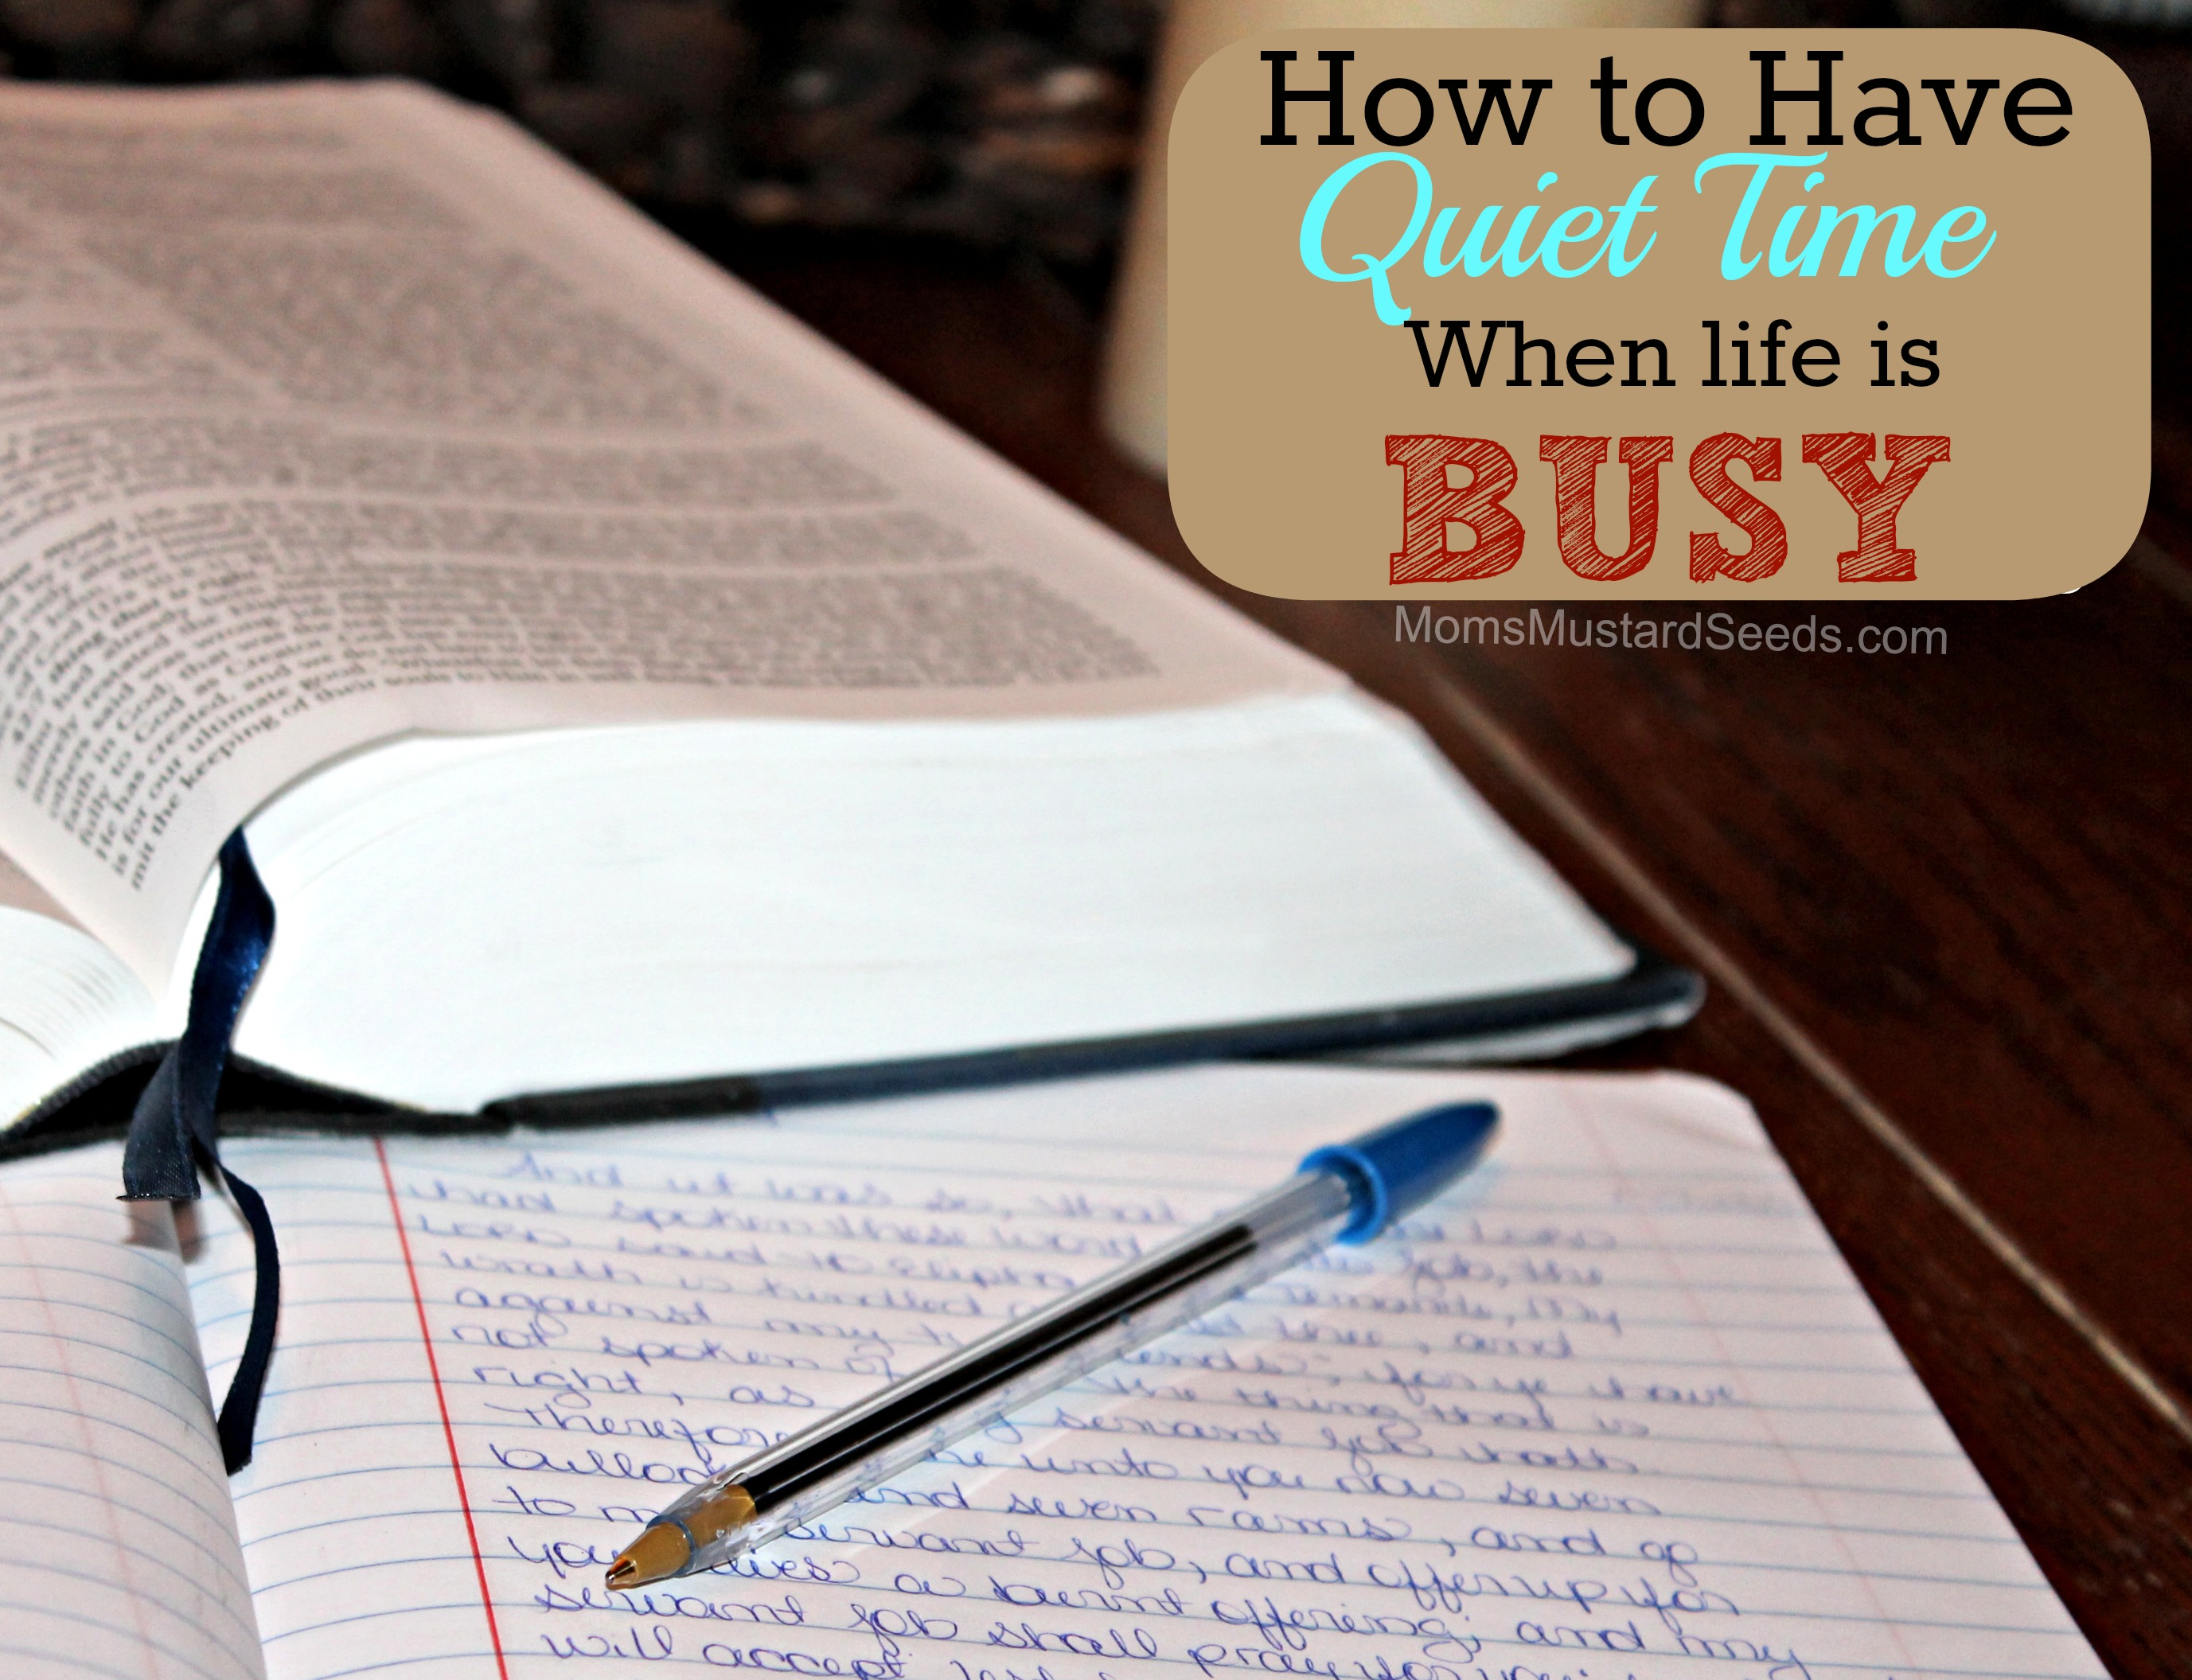 How To Have Quiet Time When Life Is Busy